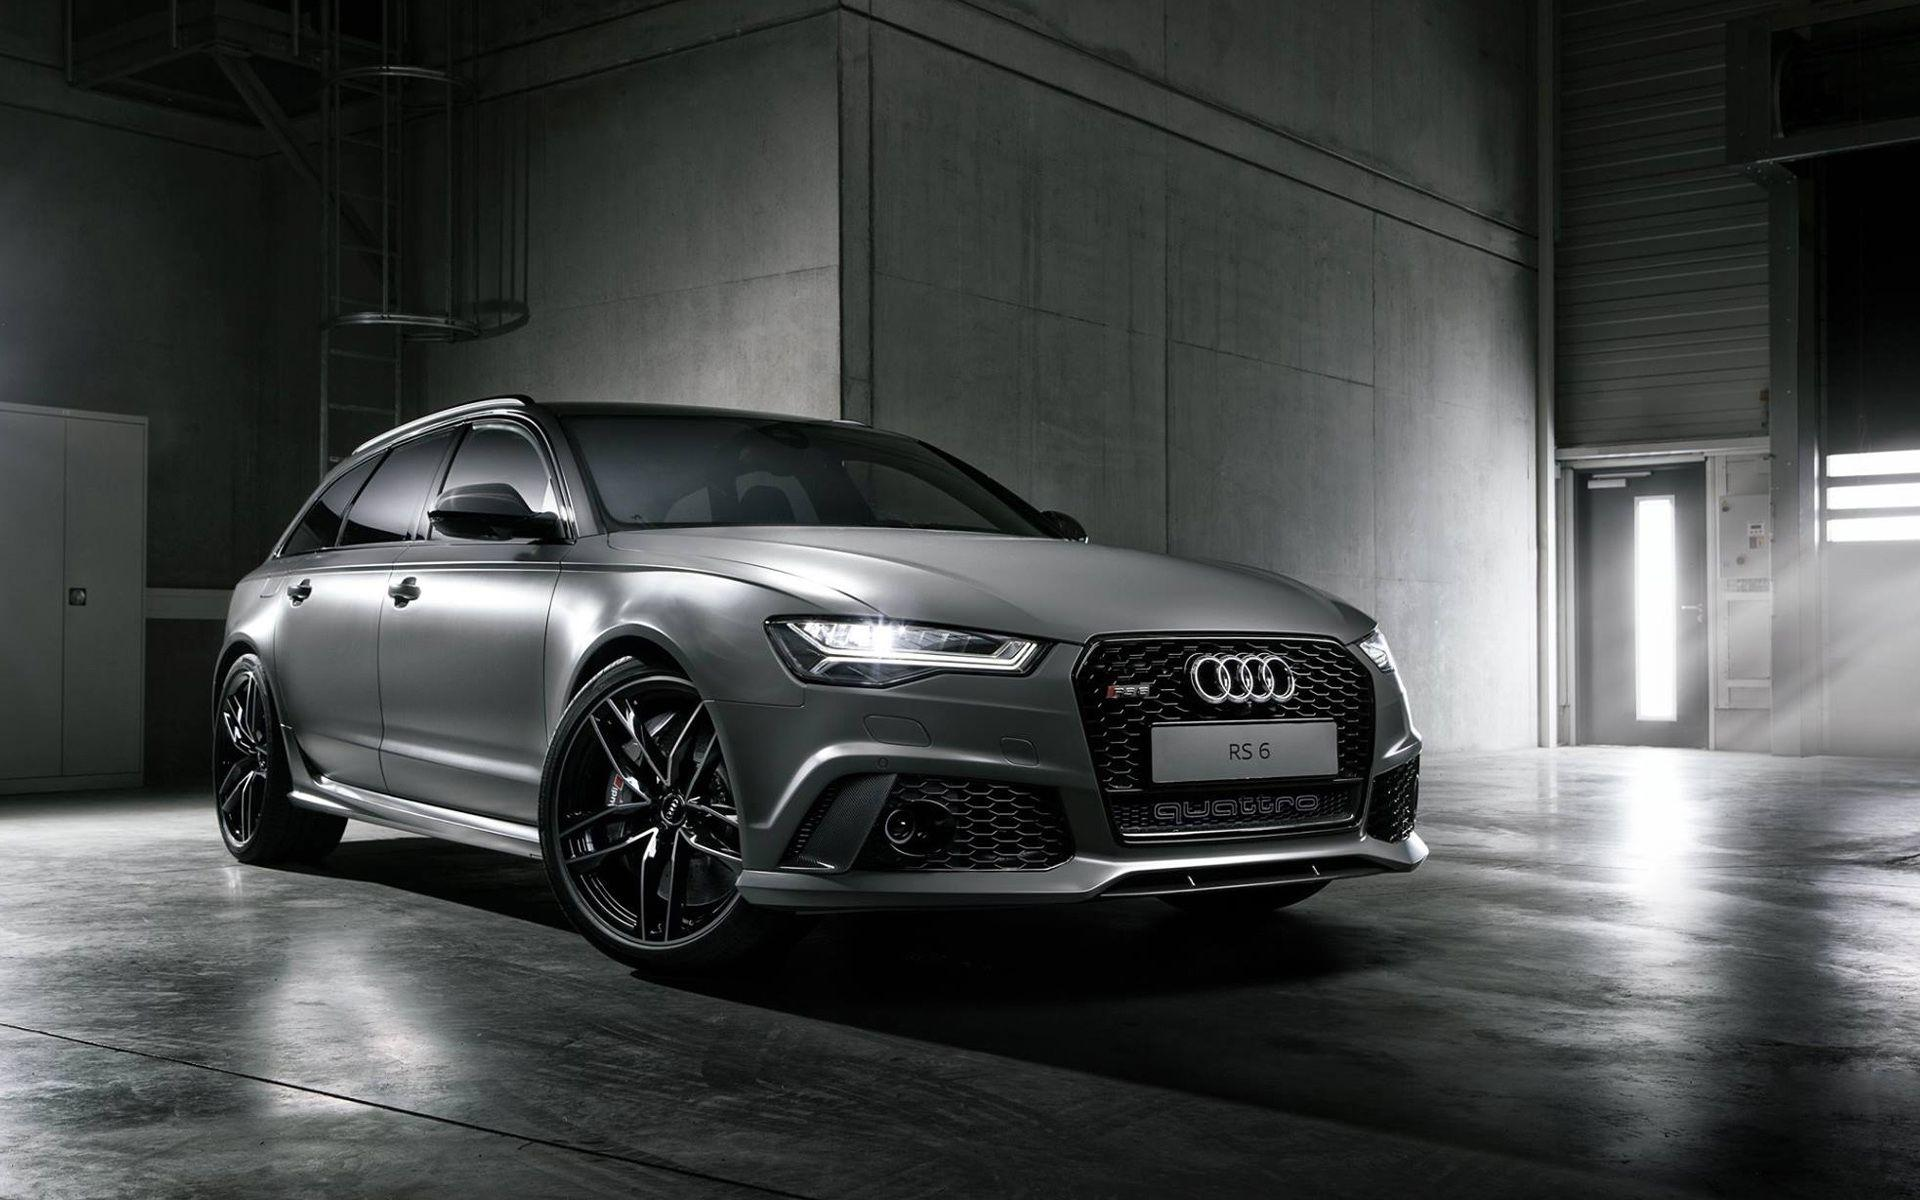 2015 Audi RS6 Avant Exclusive Wallpapers